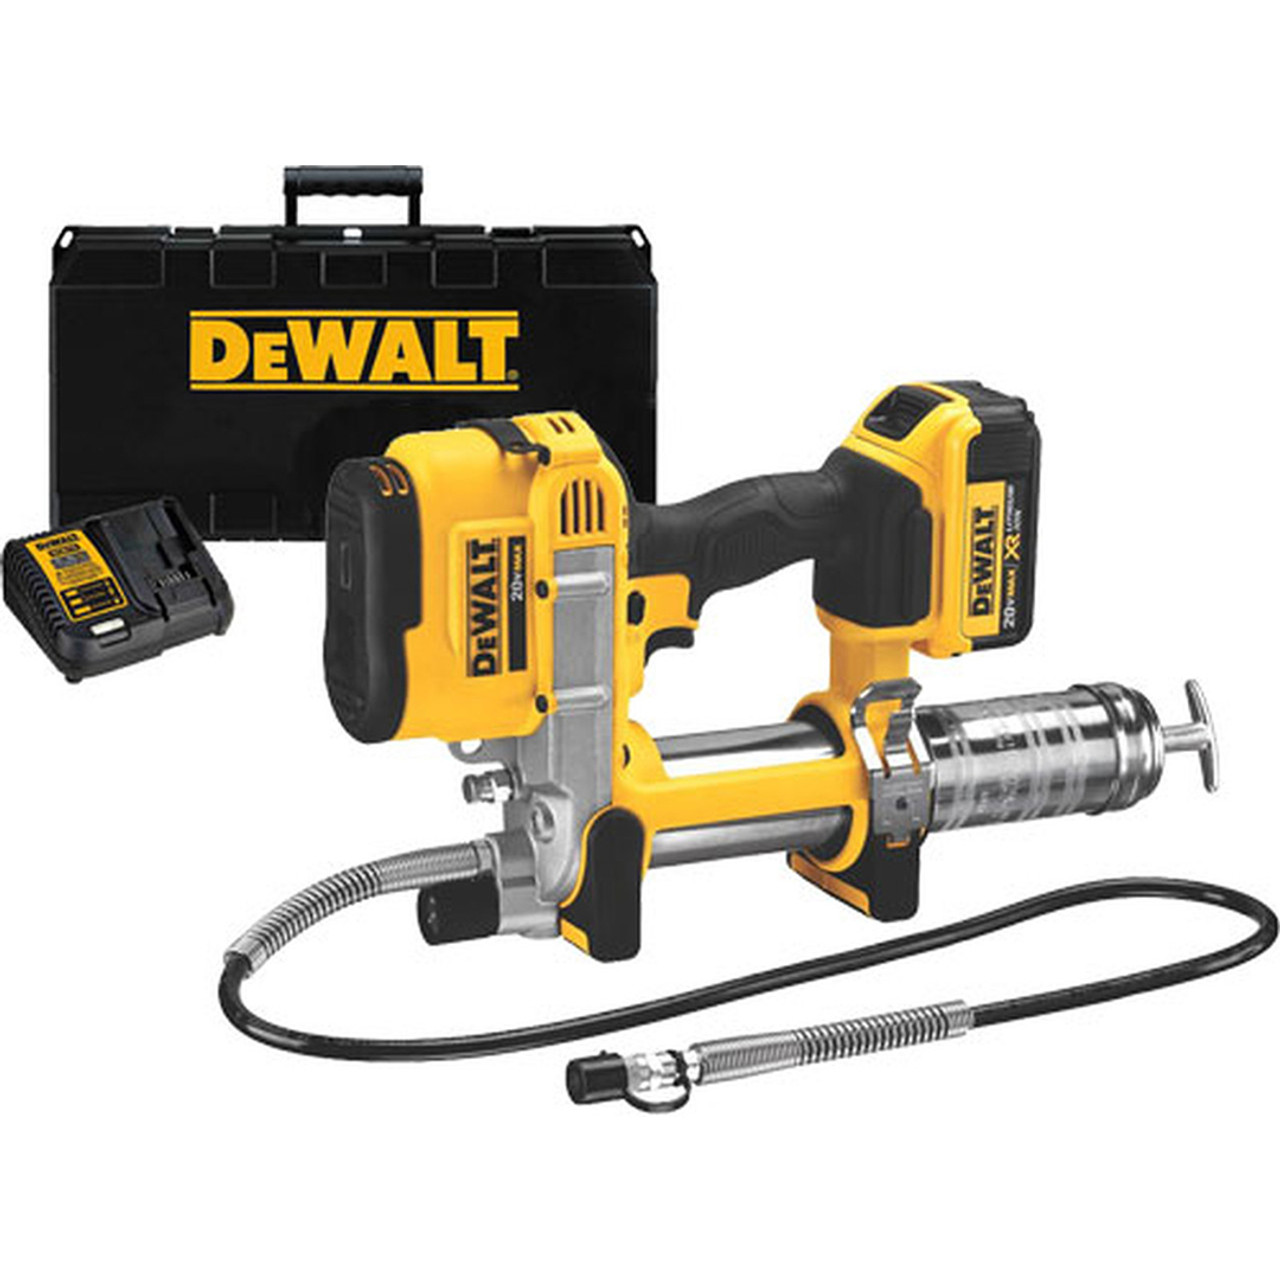 Electric Grease Gun >> Dewalt Dcgg571m1 20v Max Li Ion Grease Gun 4 0ah With Battery And Kit Box